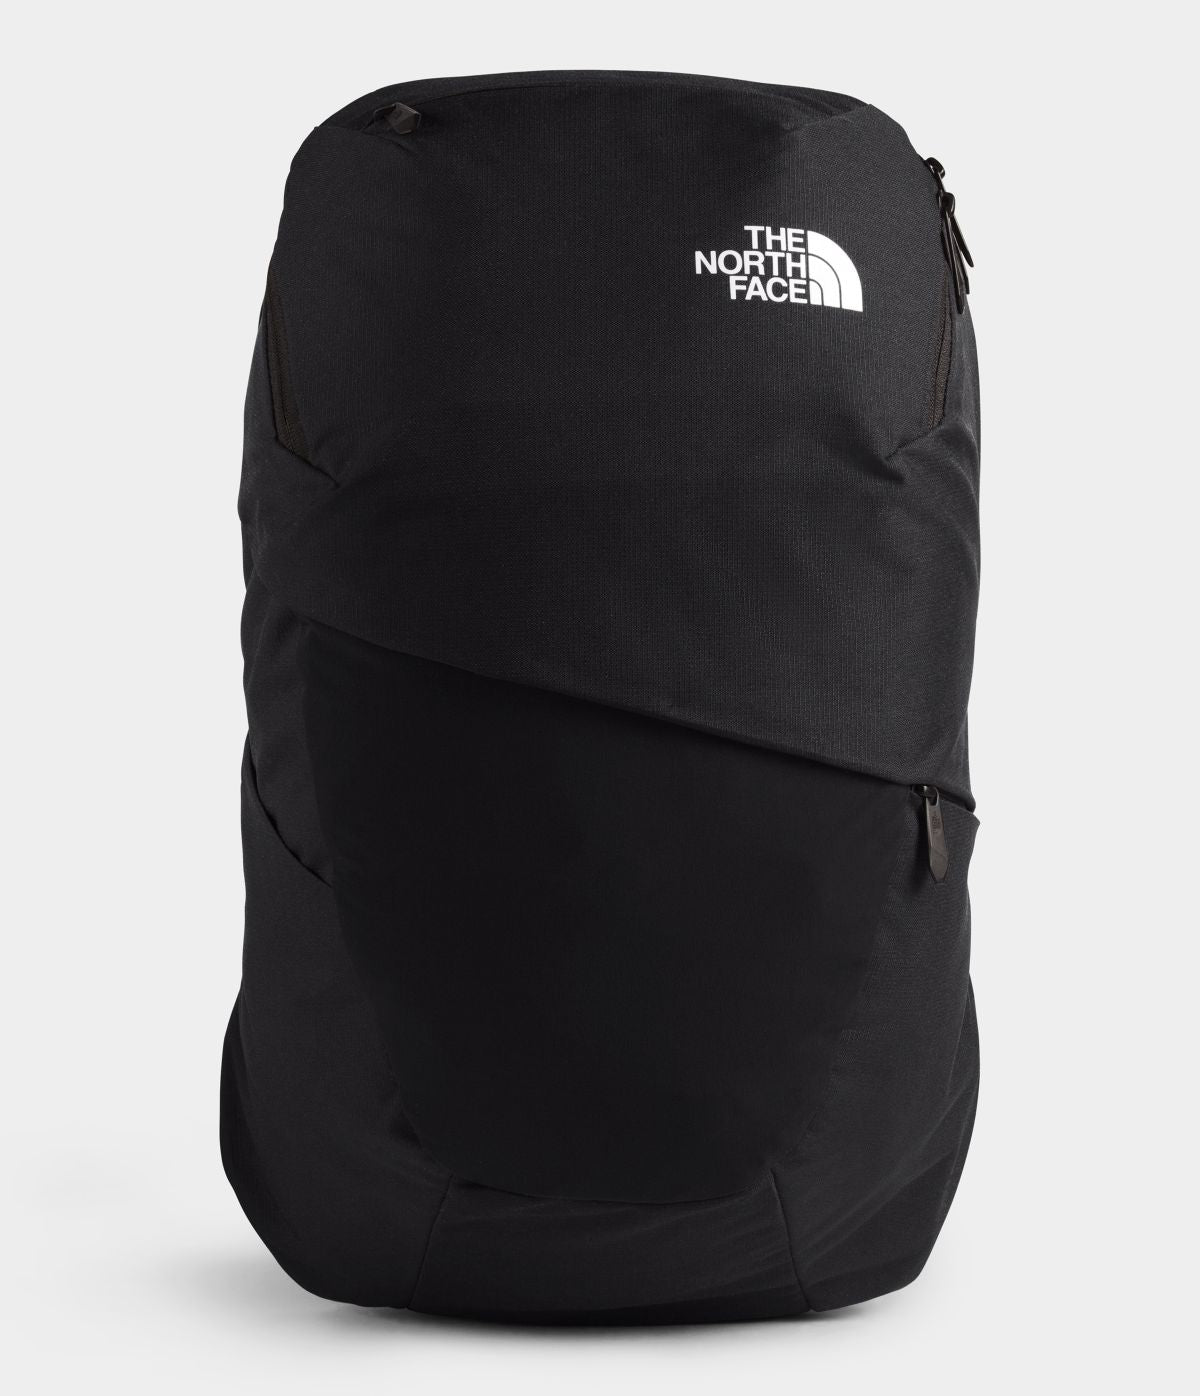 Women's The North Face Aurora Backpack in TNF Black Heather/TNF White from front view